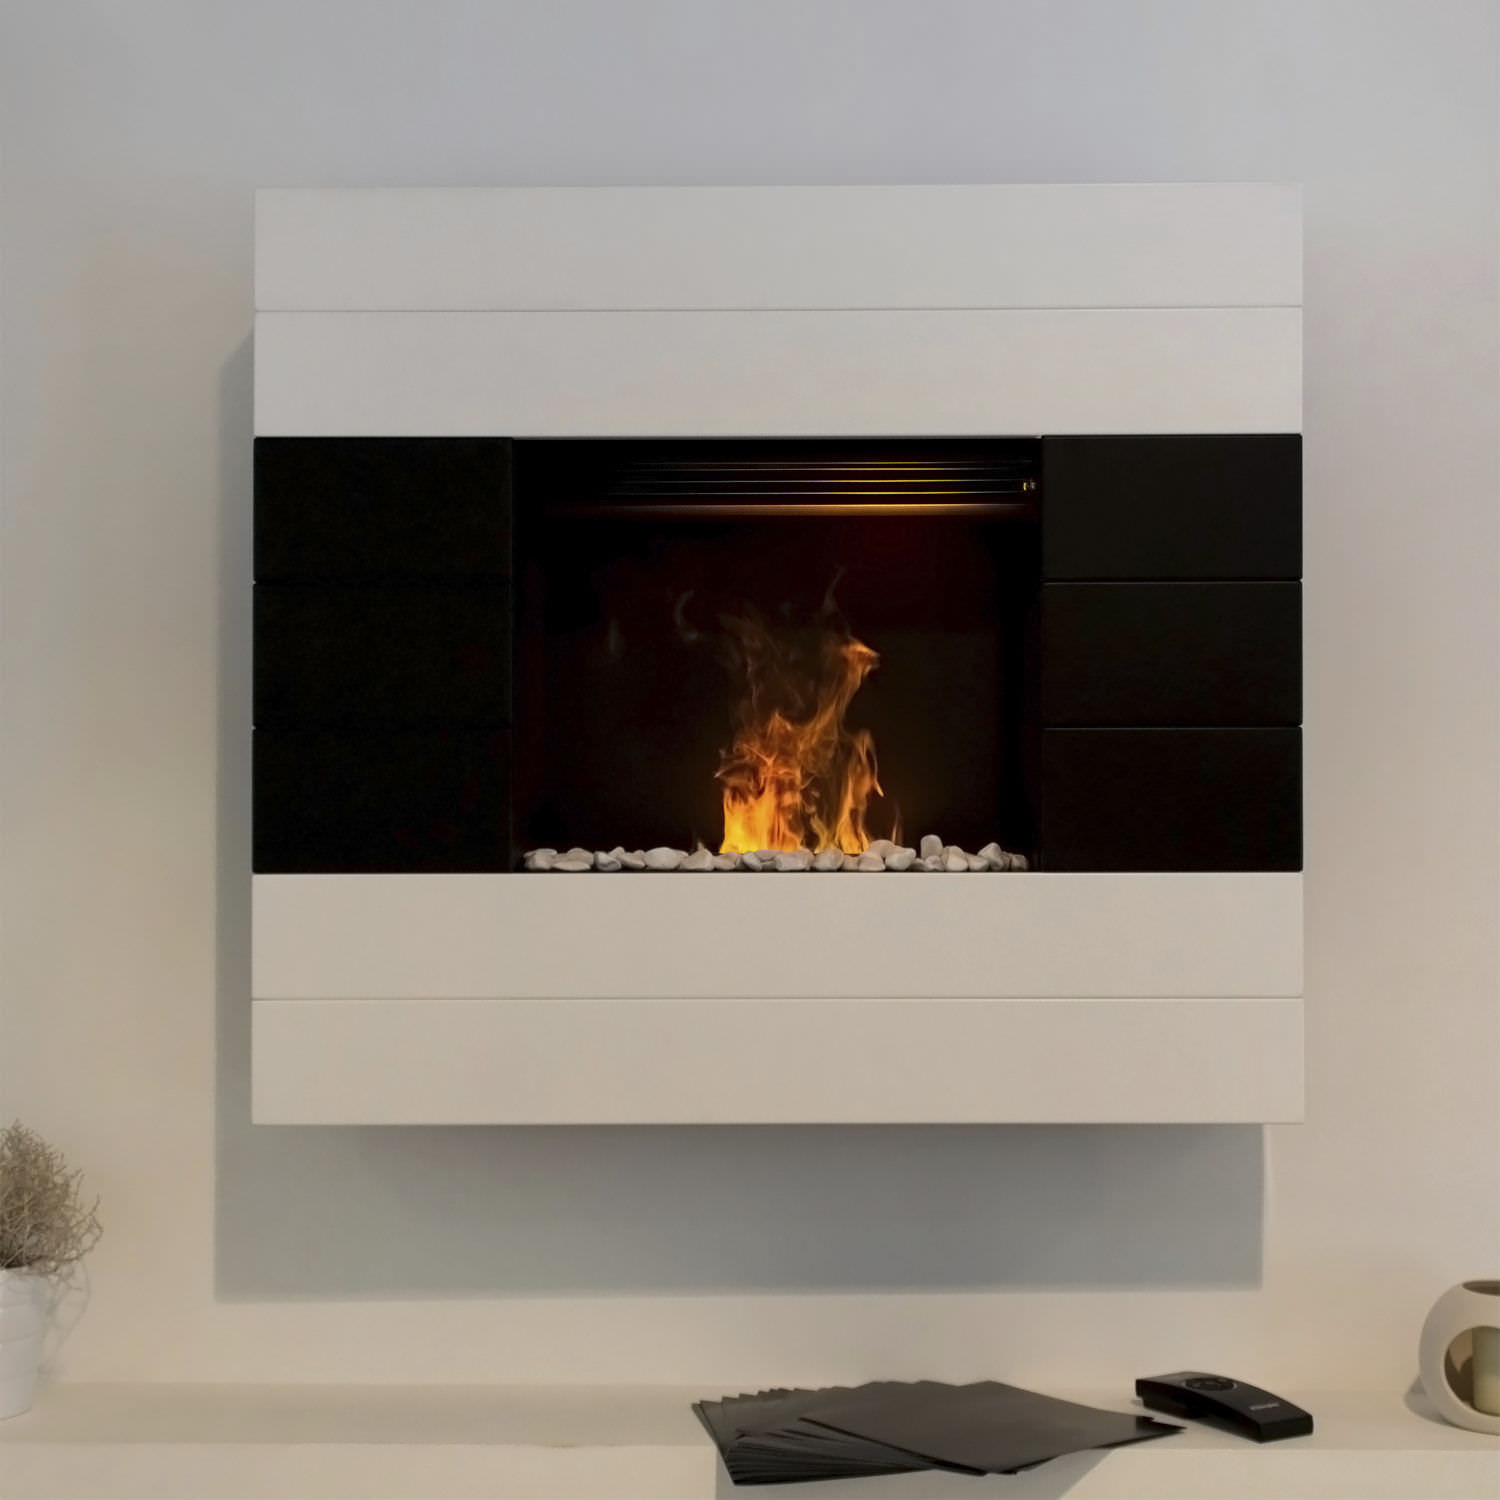 Contemporary Wall Mount Electric Fireplace FIREPLACE